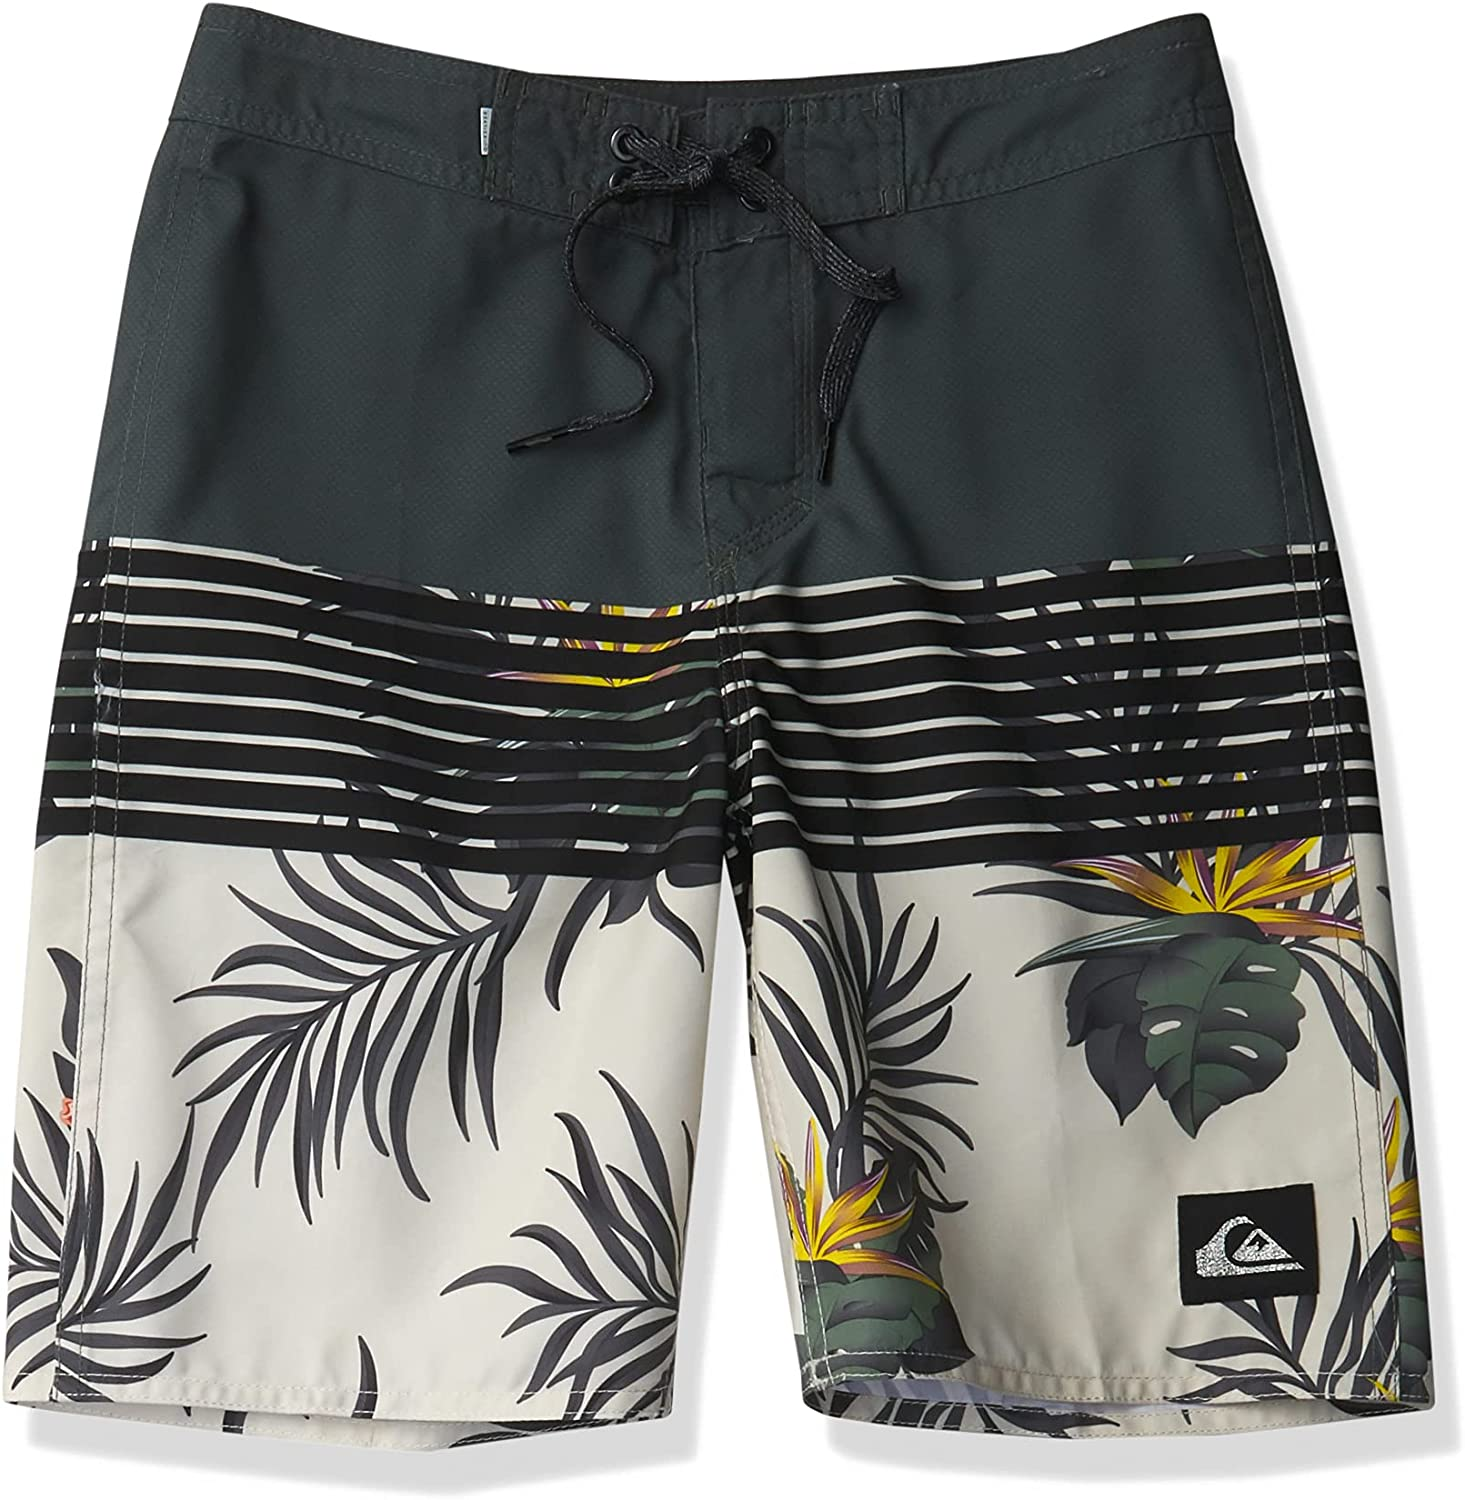 Quiksilver Boys' Everyday Division Youth 18 Boardshort Swim Trunk